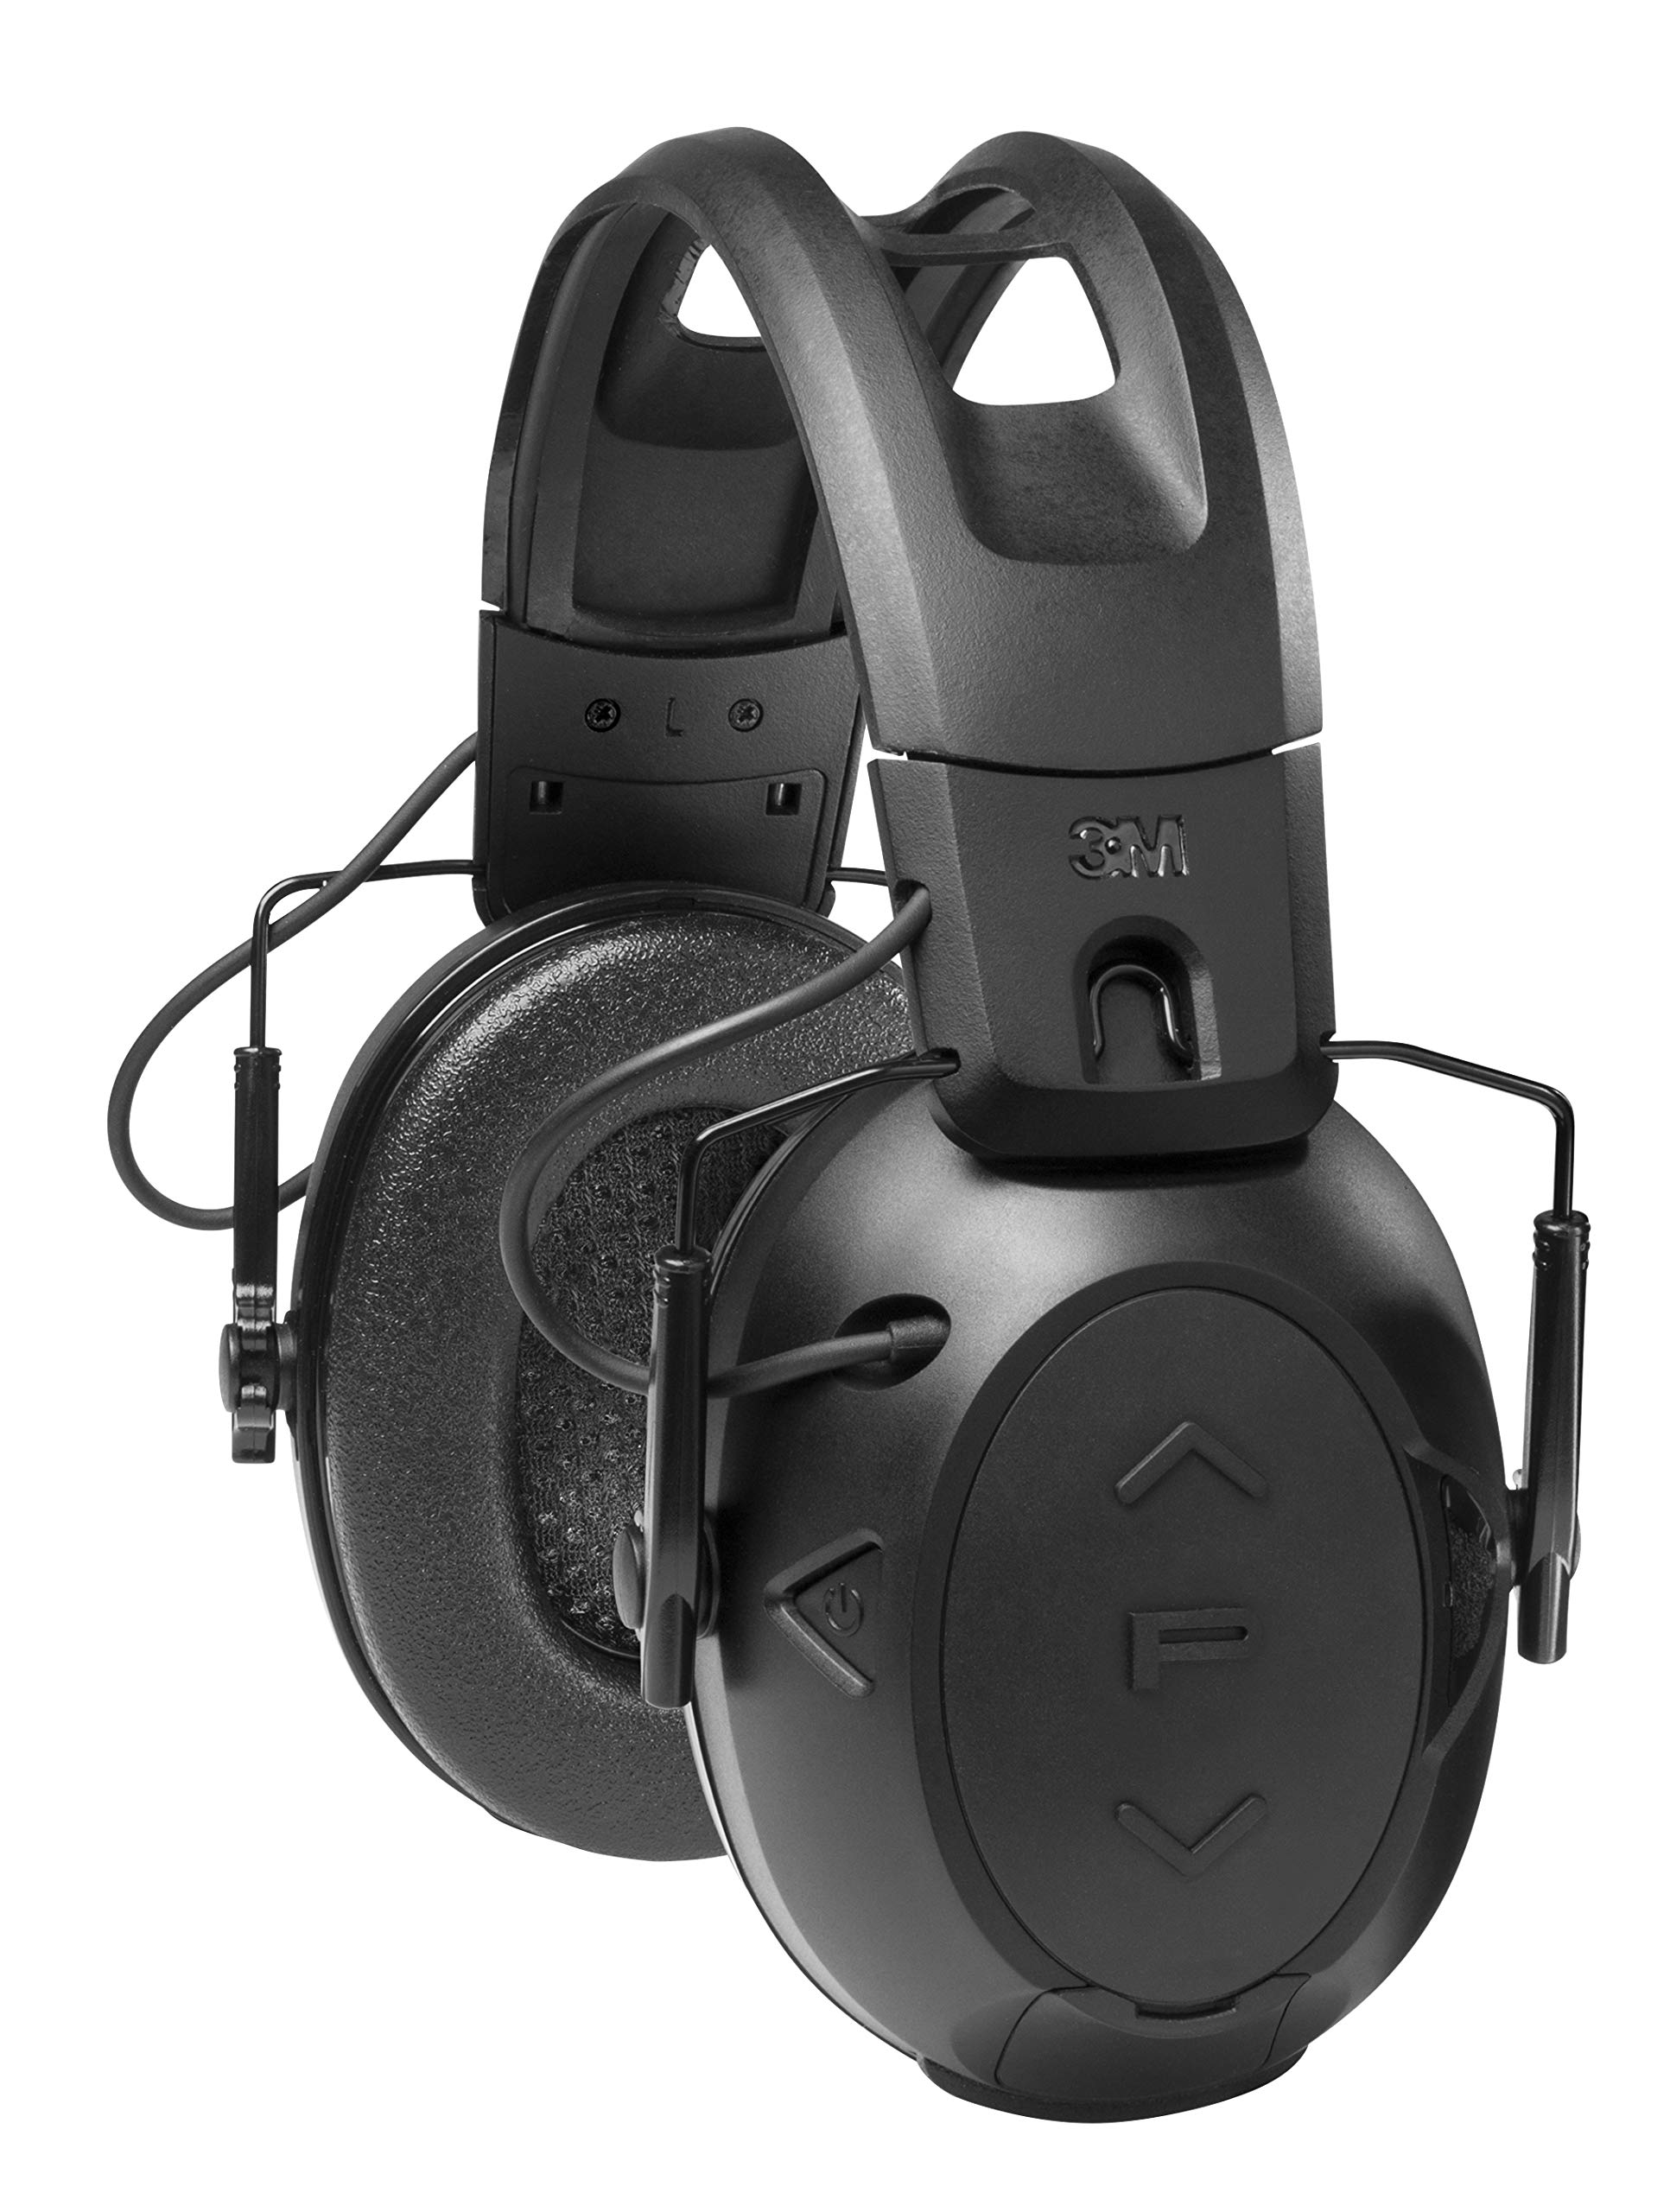 Peltor Sport Tactical 300 Electronic Hearing Protector, Ear Protection, NRR 24 dB, Ideal for Shooting and Hunting by Peltor